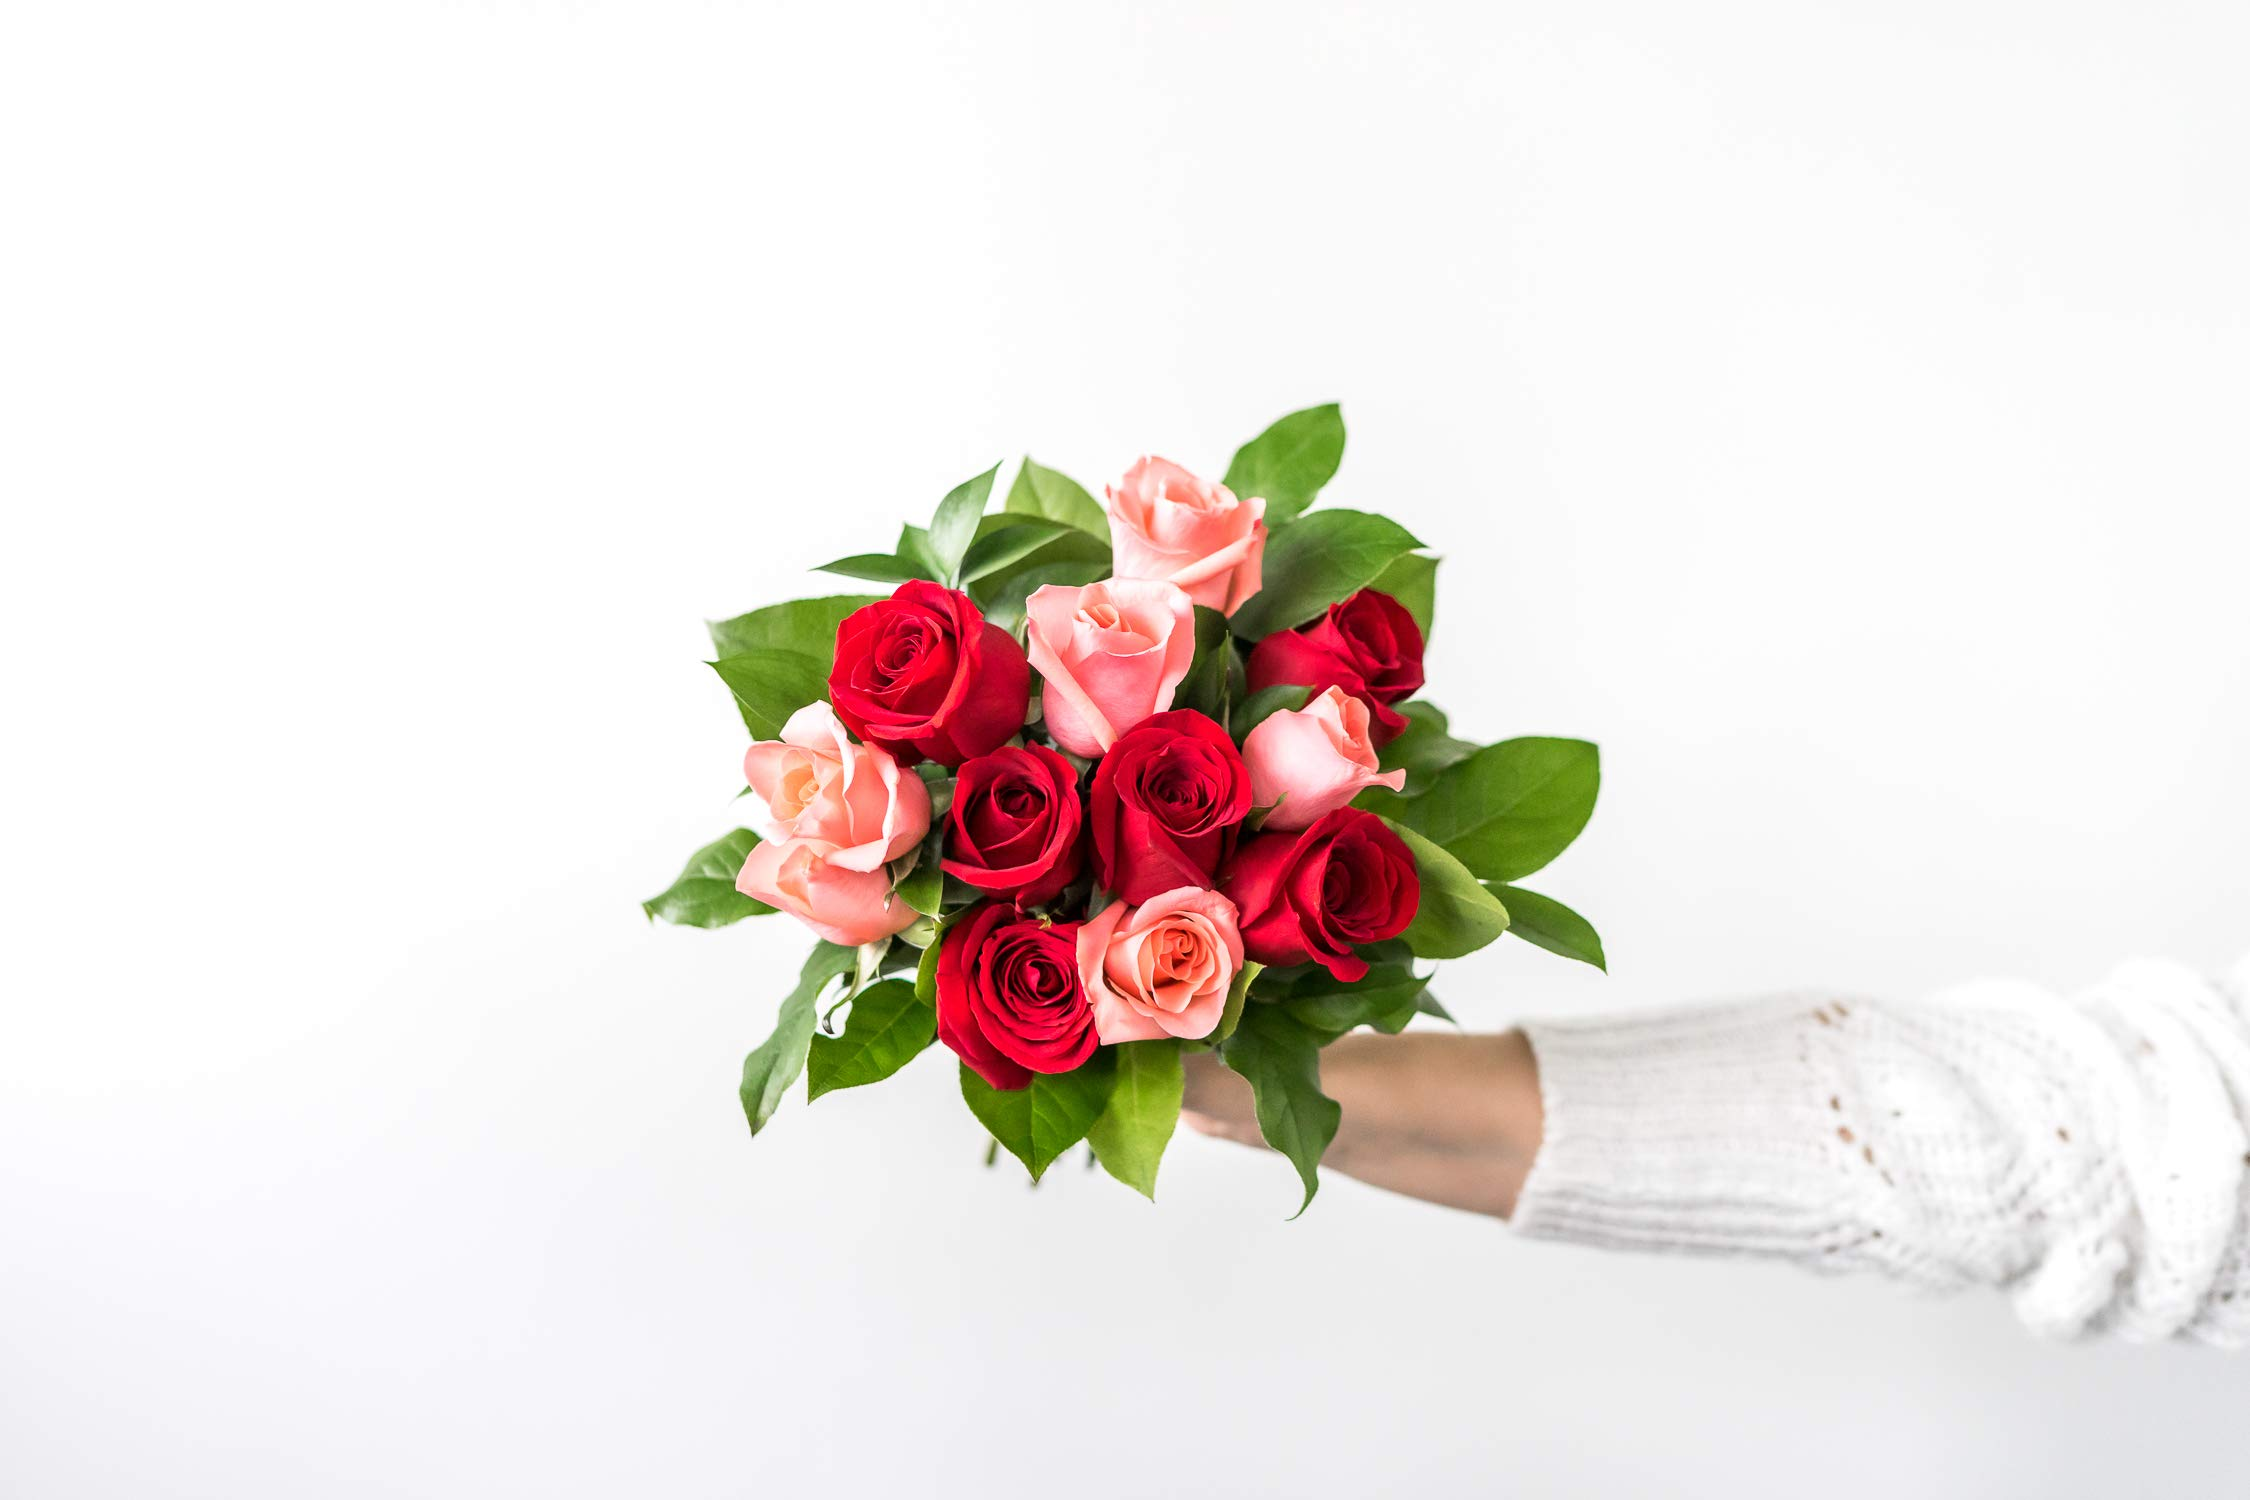 Flowers - One Dozen Red & Pink Roses with Godiva and a Bear (Free Vase Included) by From You Flowers